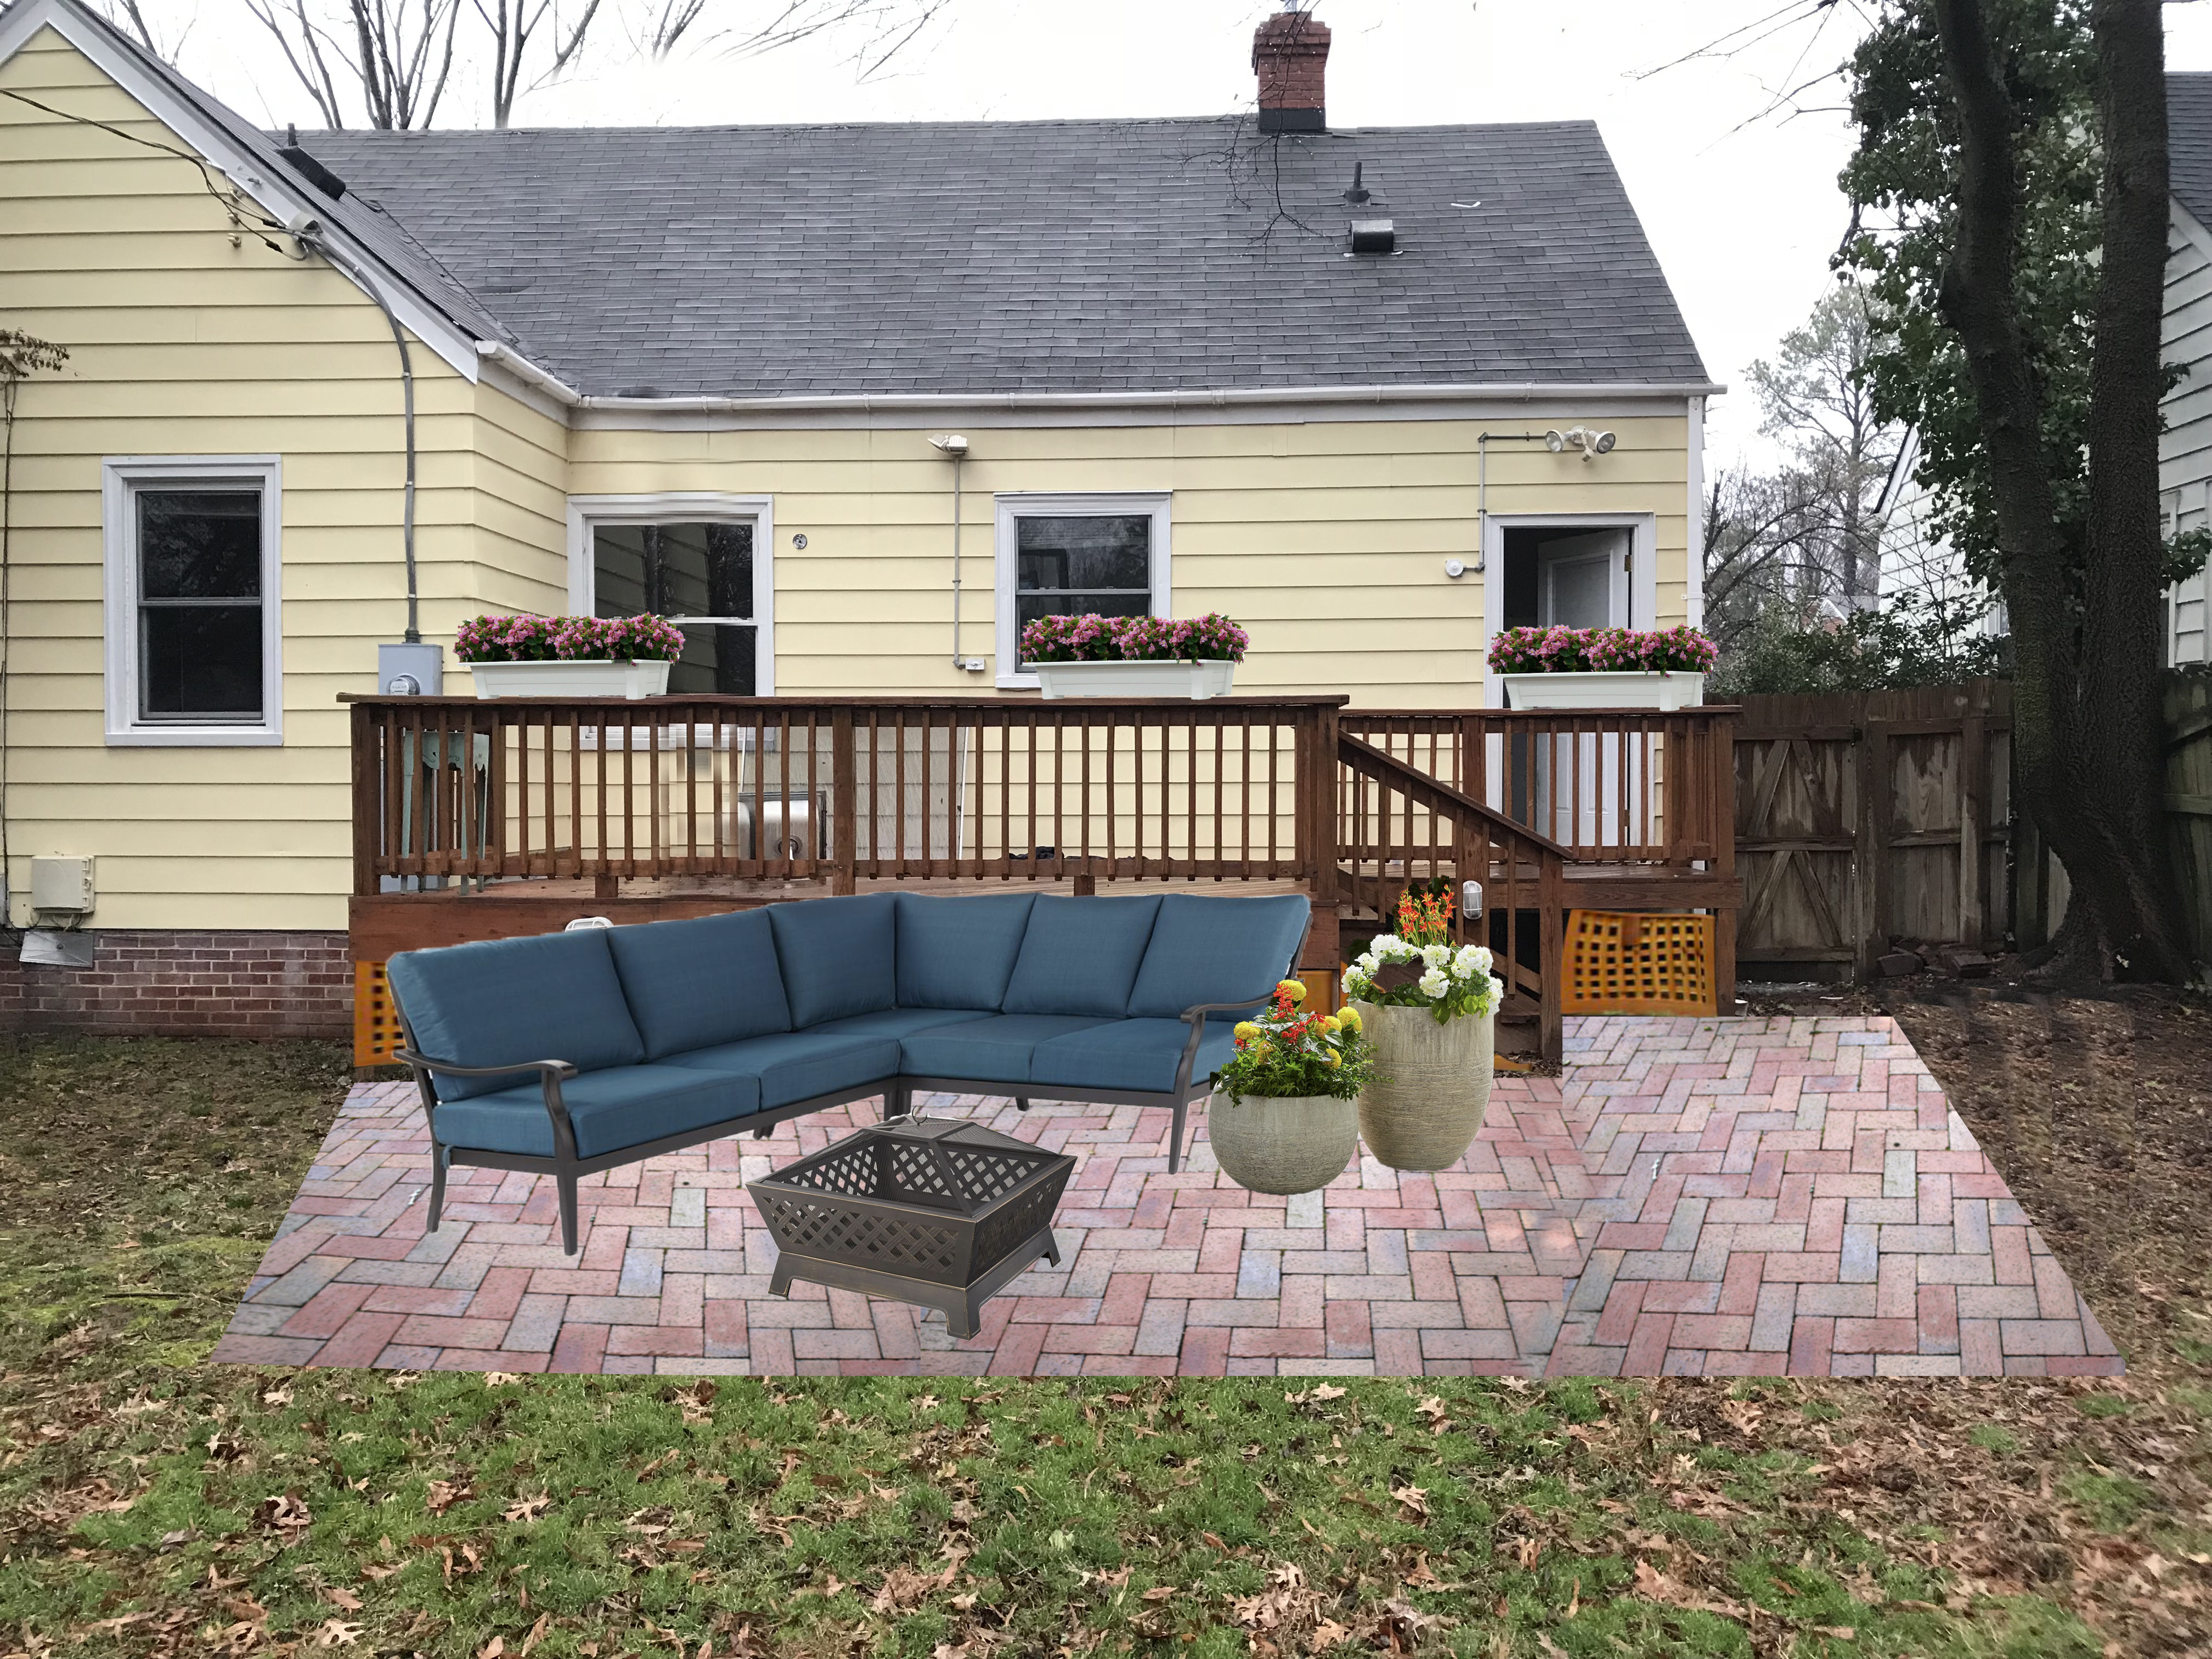 Adding a DIY Paver Patio to the Backyard - Live Free ... on Diy Back Patio Ideas id=95422